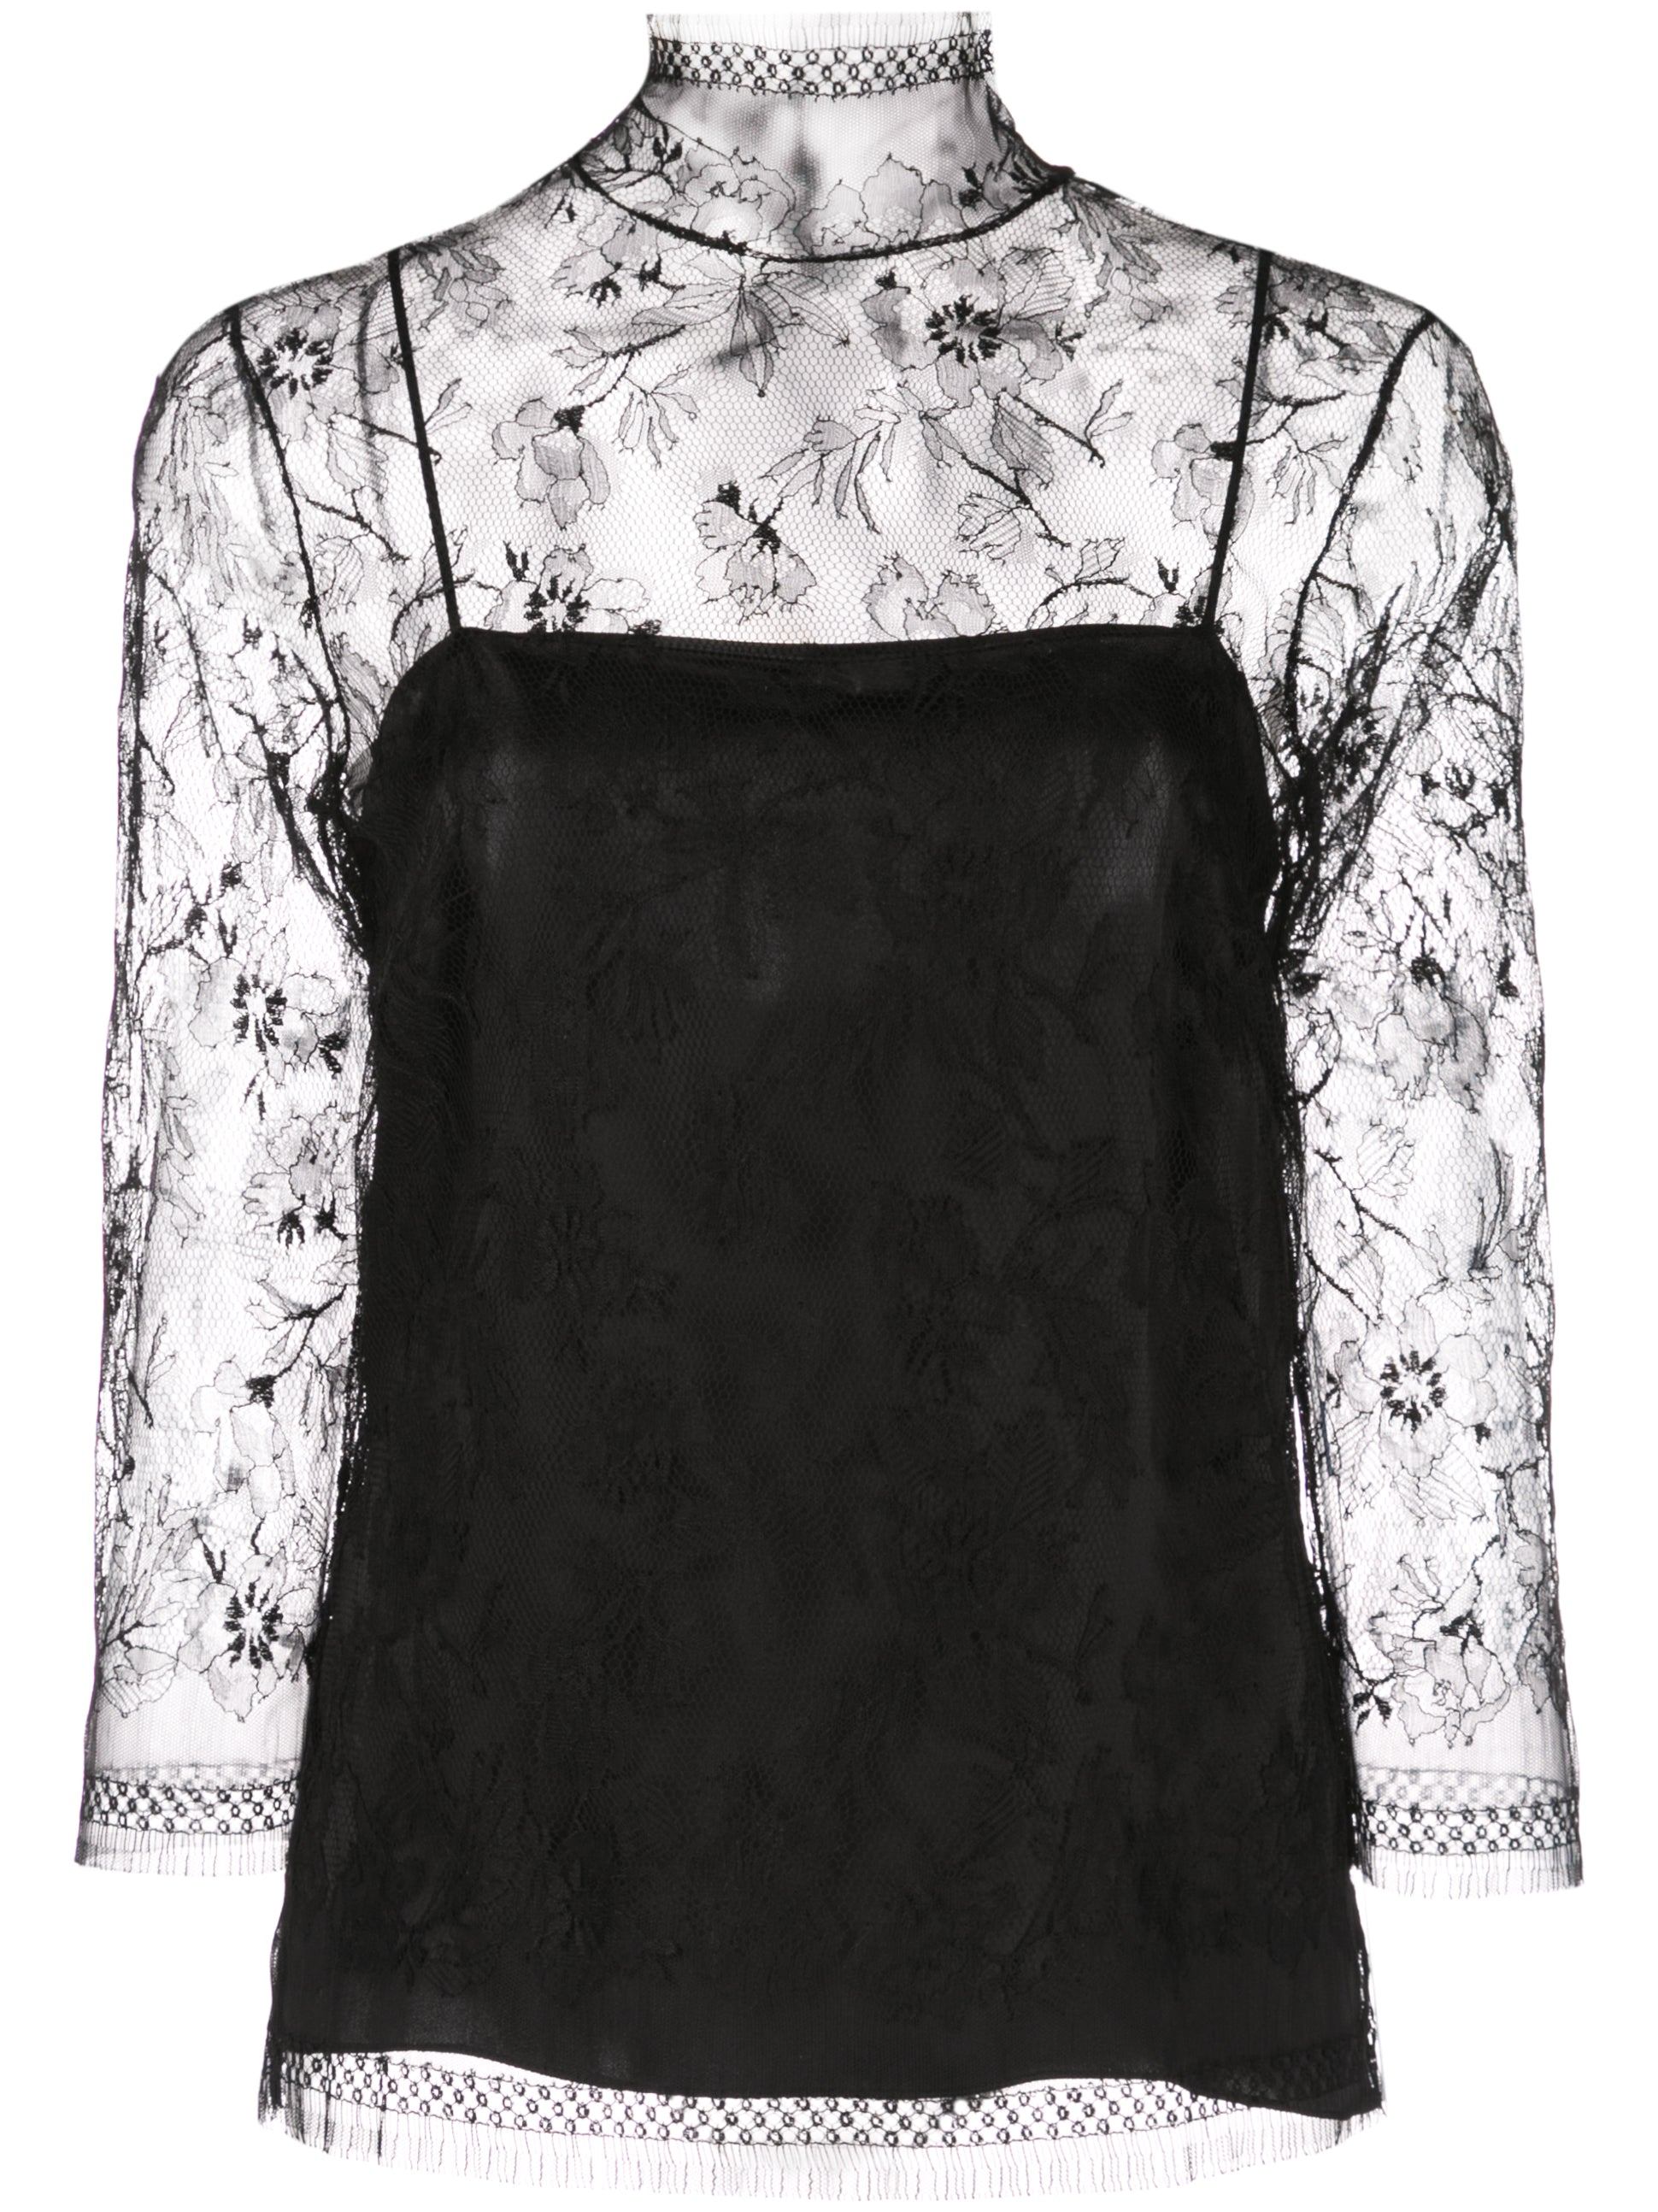 CHANTILLY LACE 3/4 SLEEVE TURTLENECK